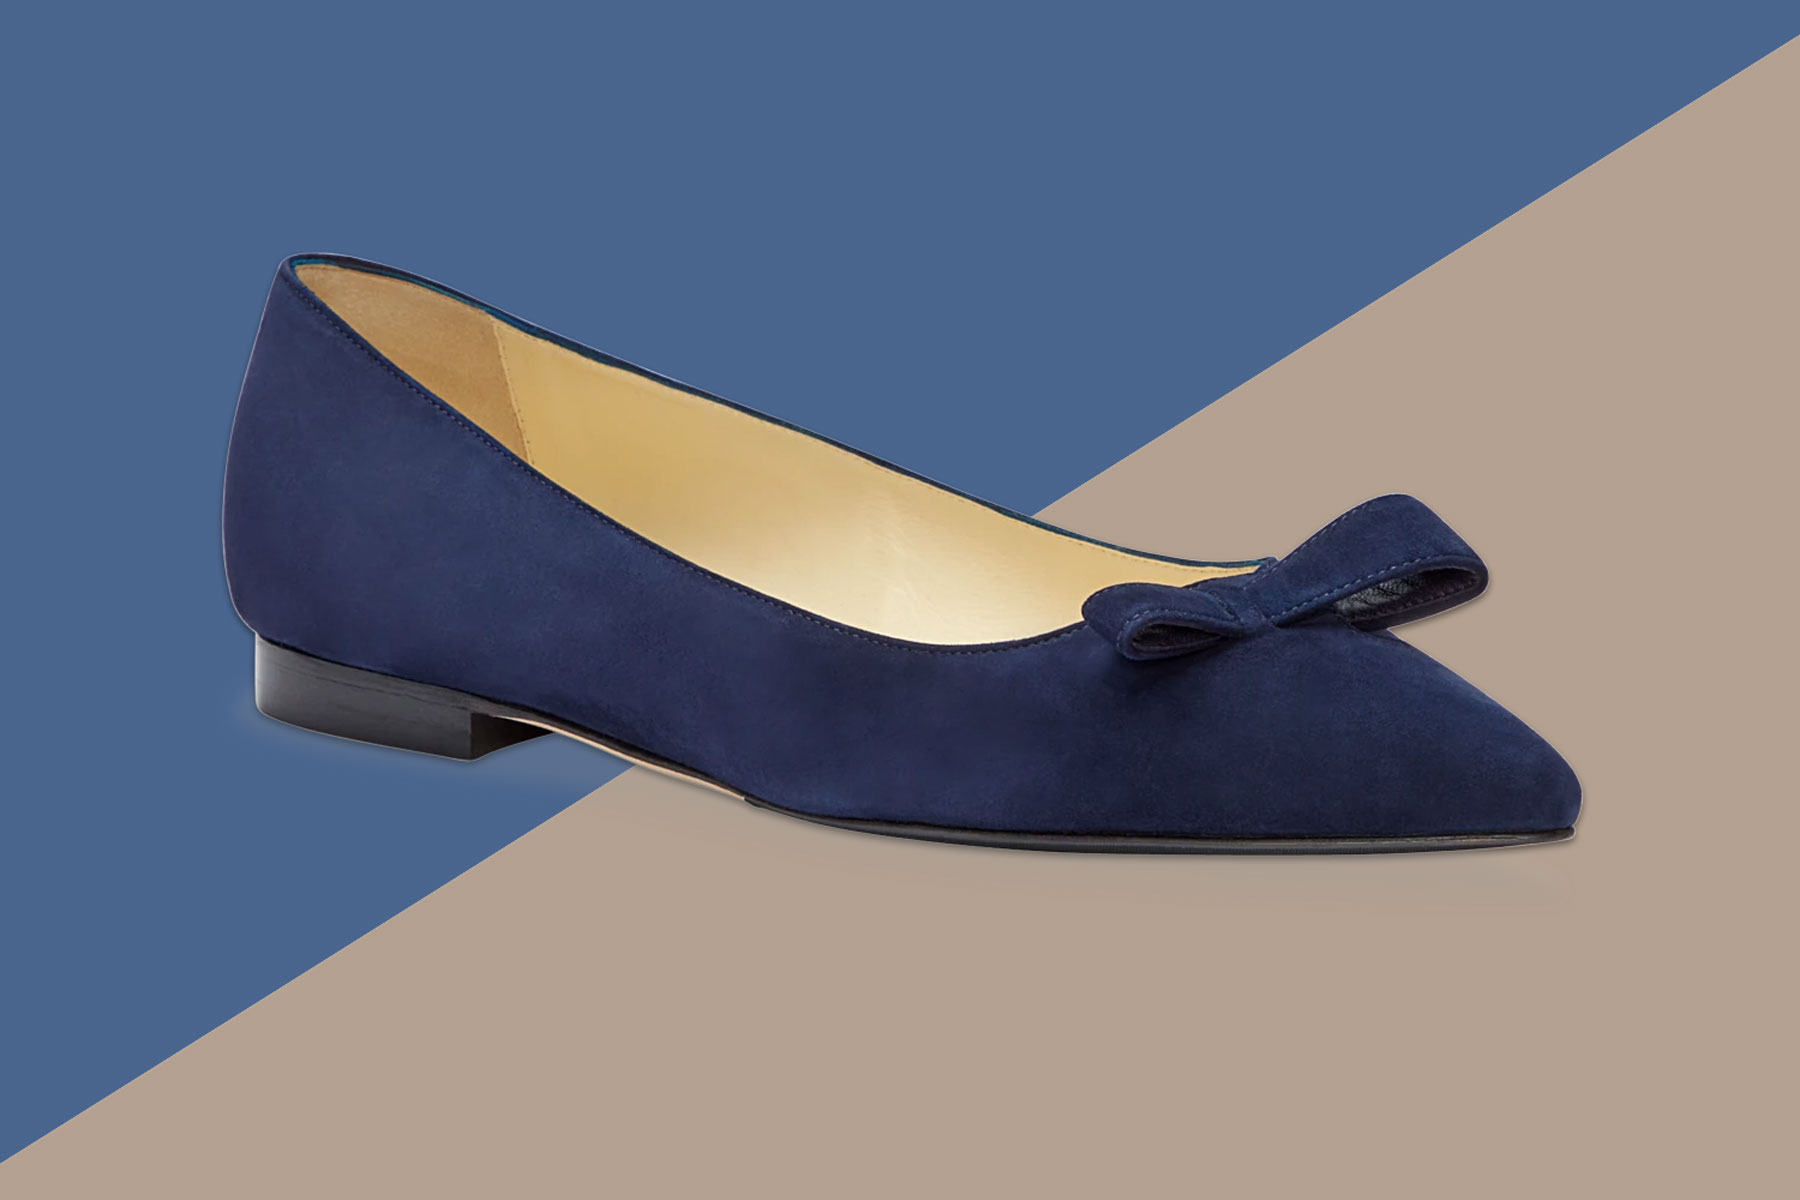 These Meghan Markle-loved Flats Are on